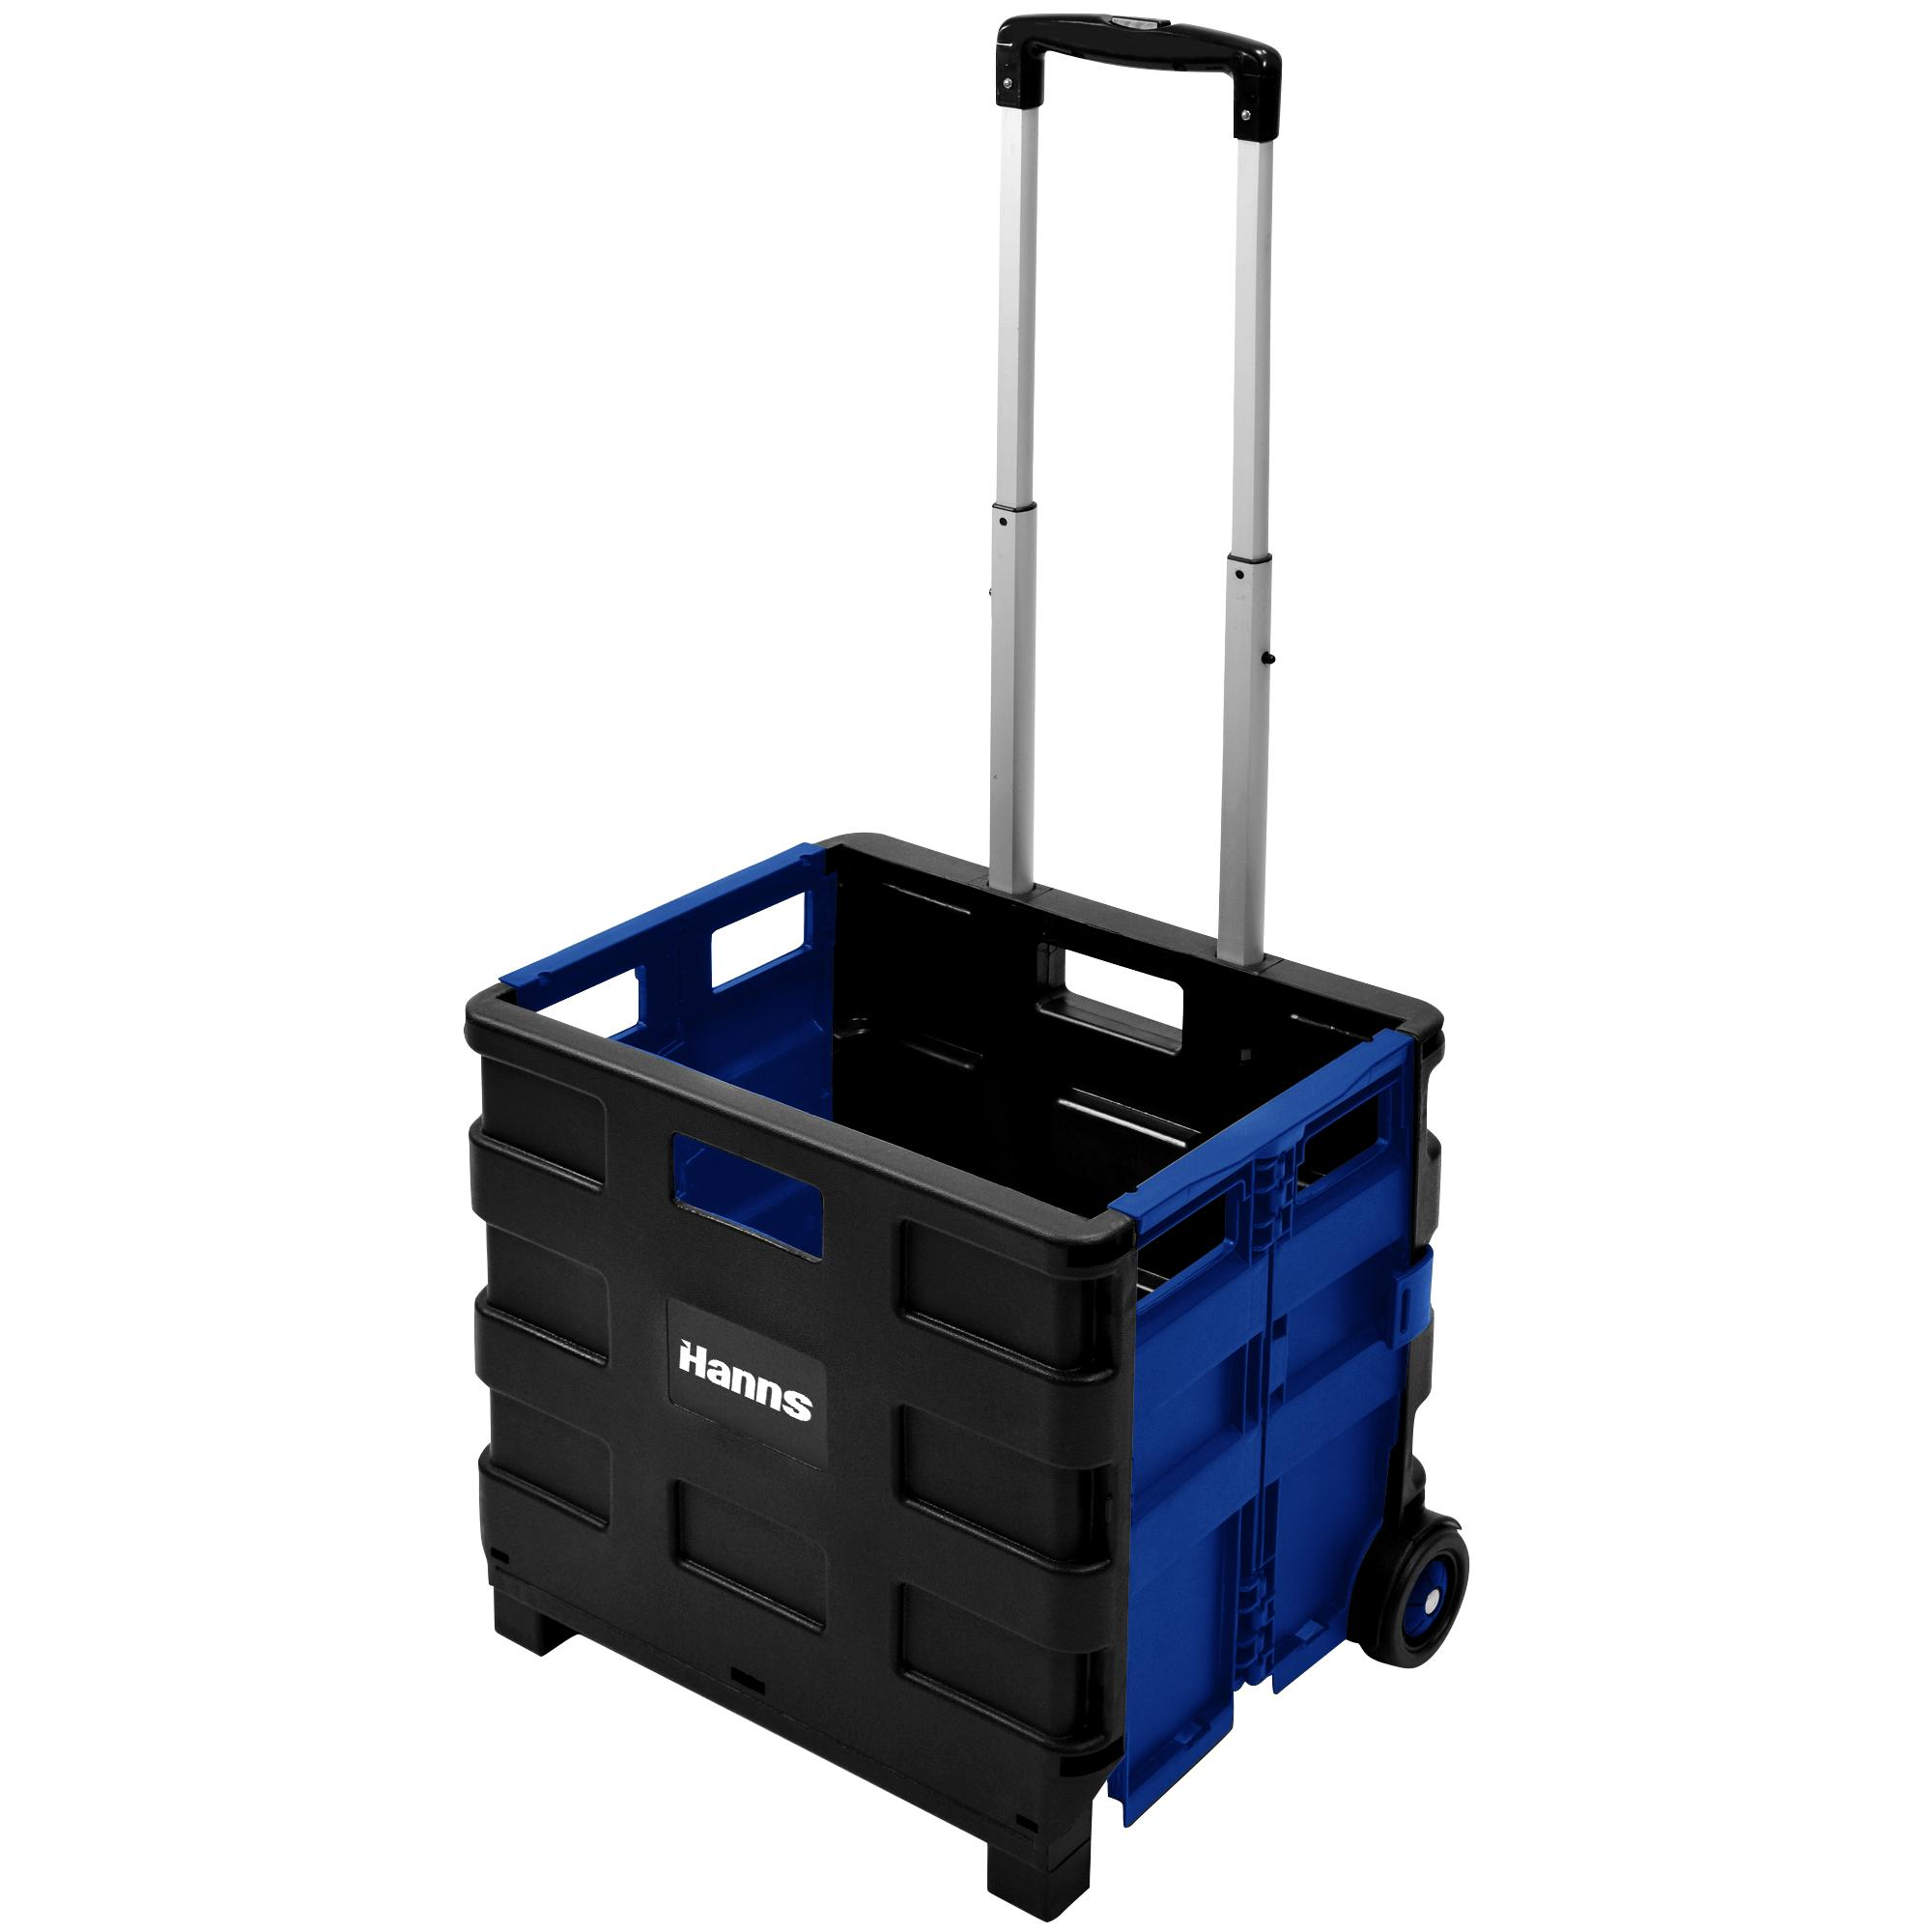 Nfsc - Hanns Foldable Trolley Cart By Nfsc.